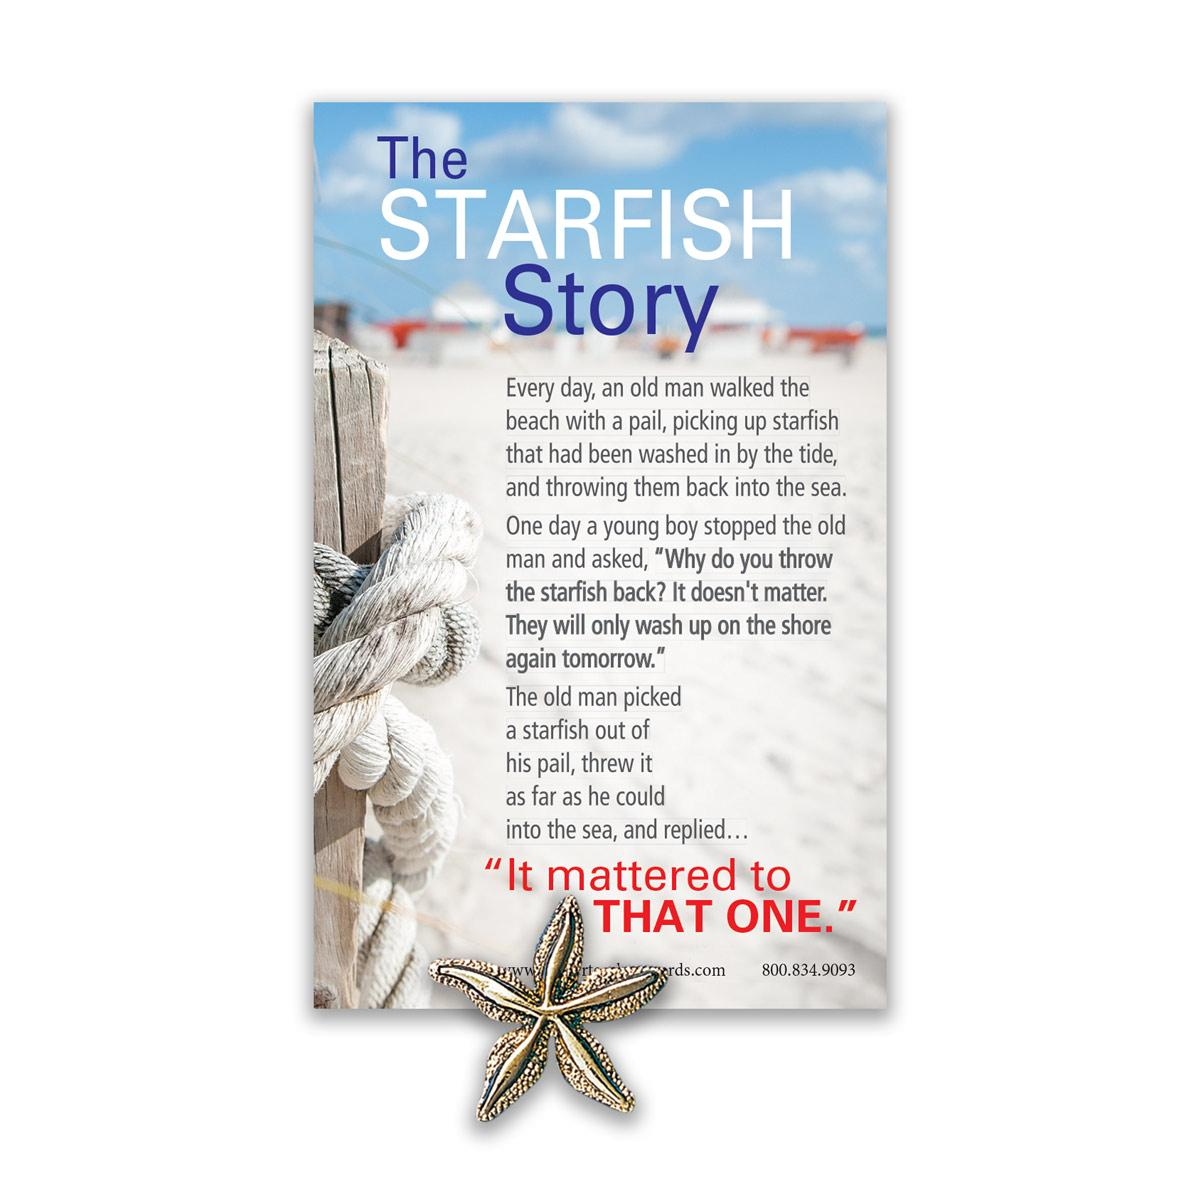 image about Starfish Poem Printable named The Starfish Tale Lapel Pin